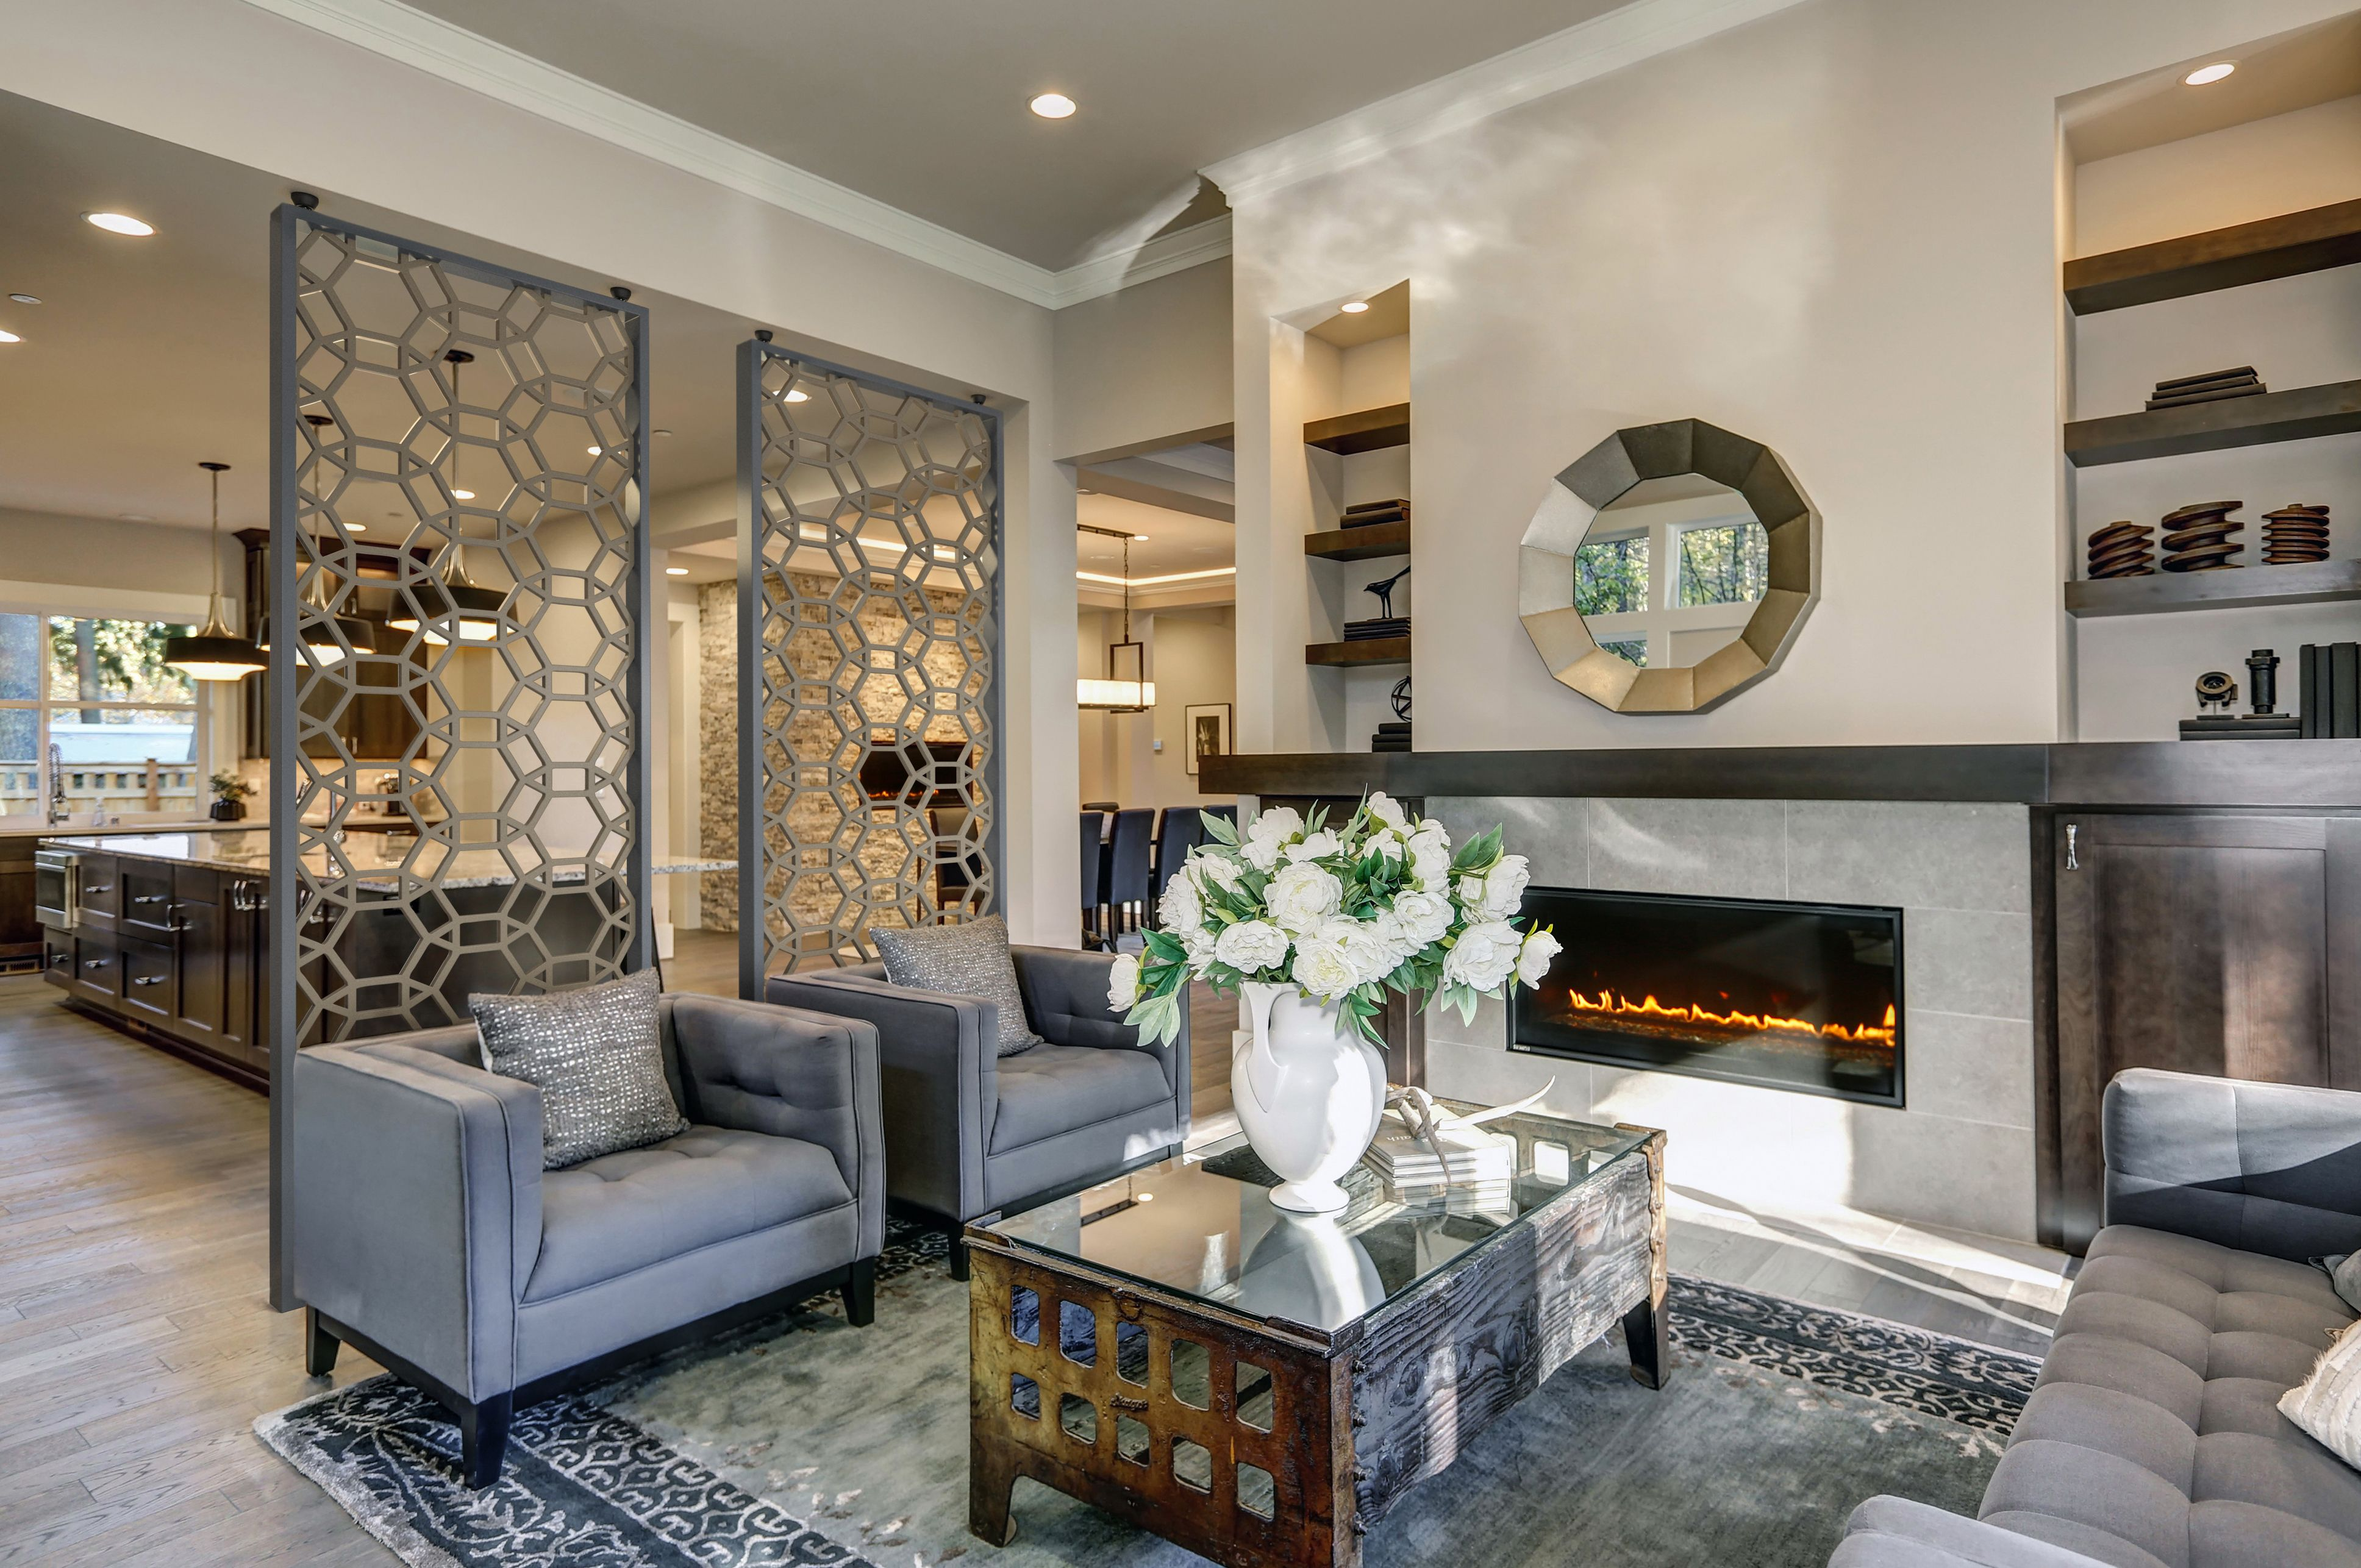 Tableaux Room Partitions Add A Modern Look To This Space Using